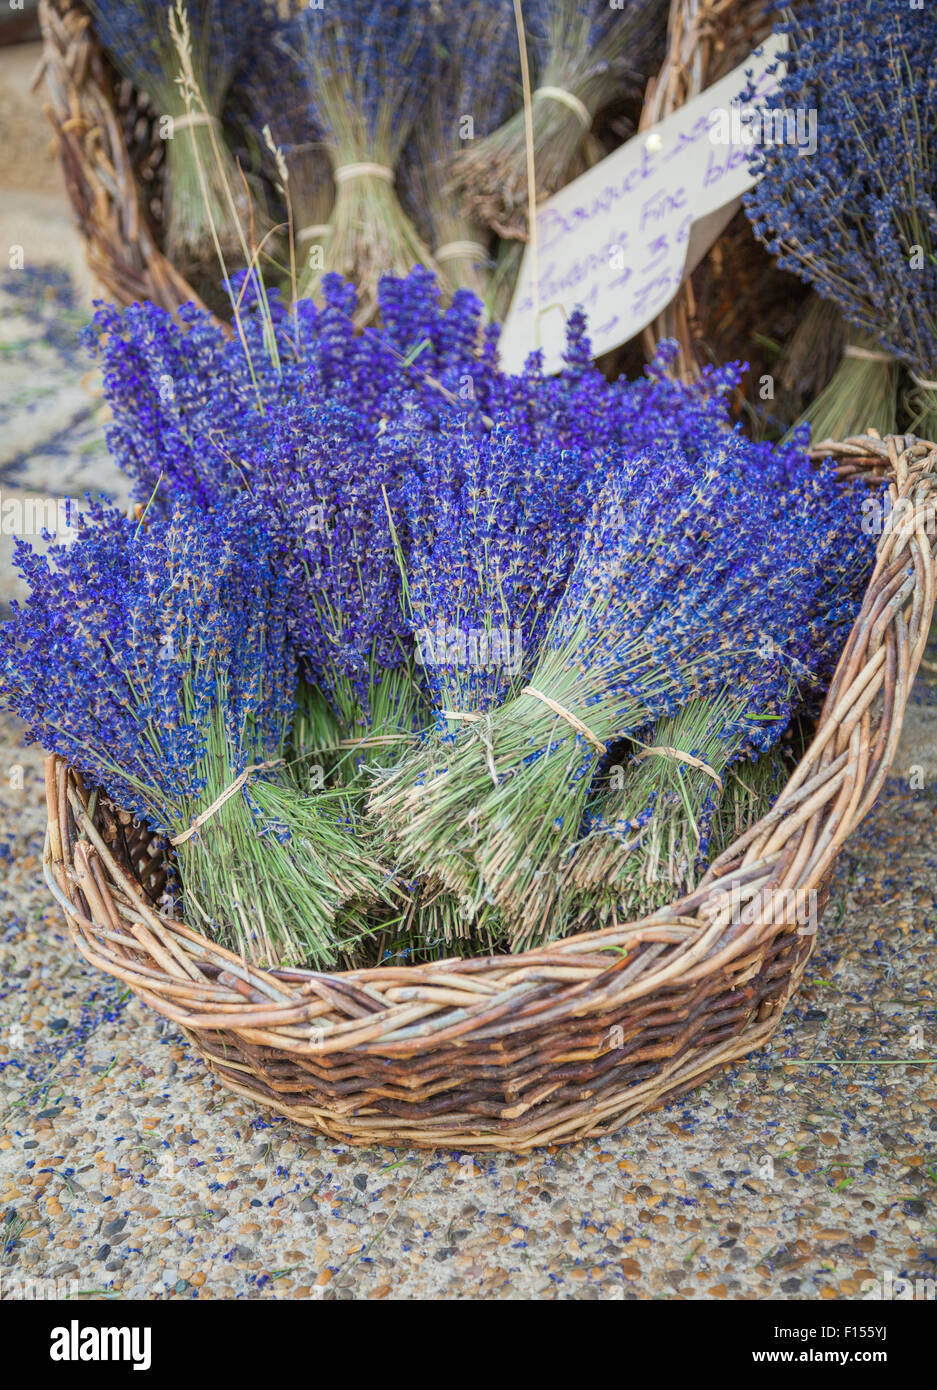 Lavender in front of a store in Sault in Provence - Stock Image